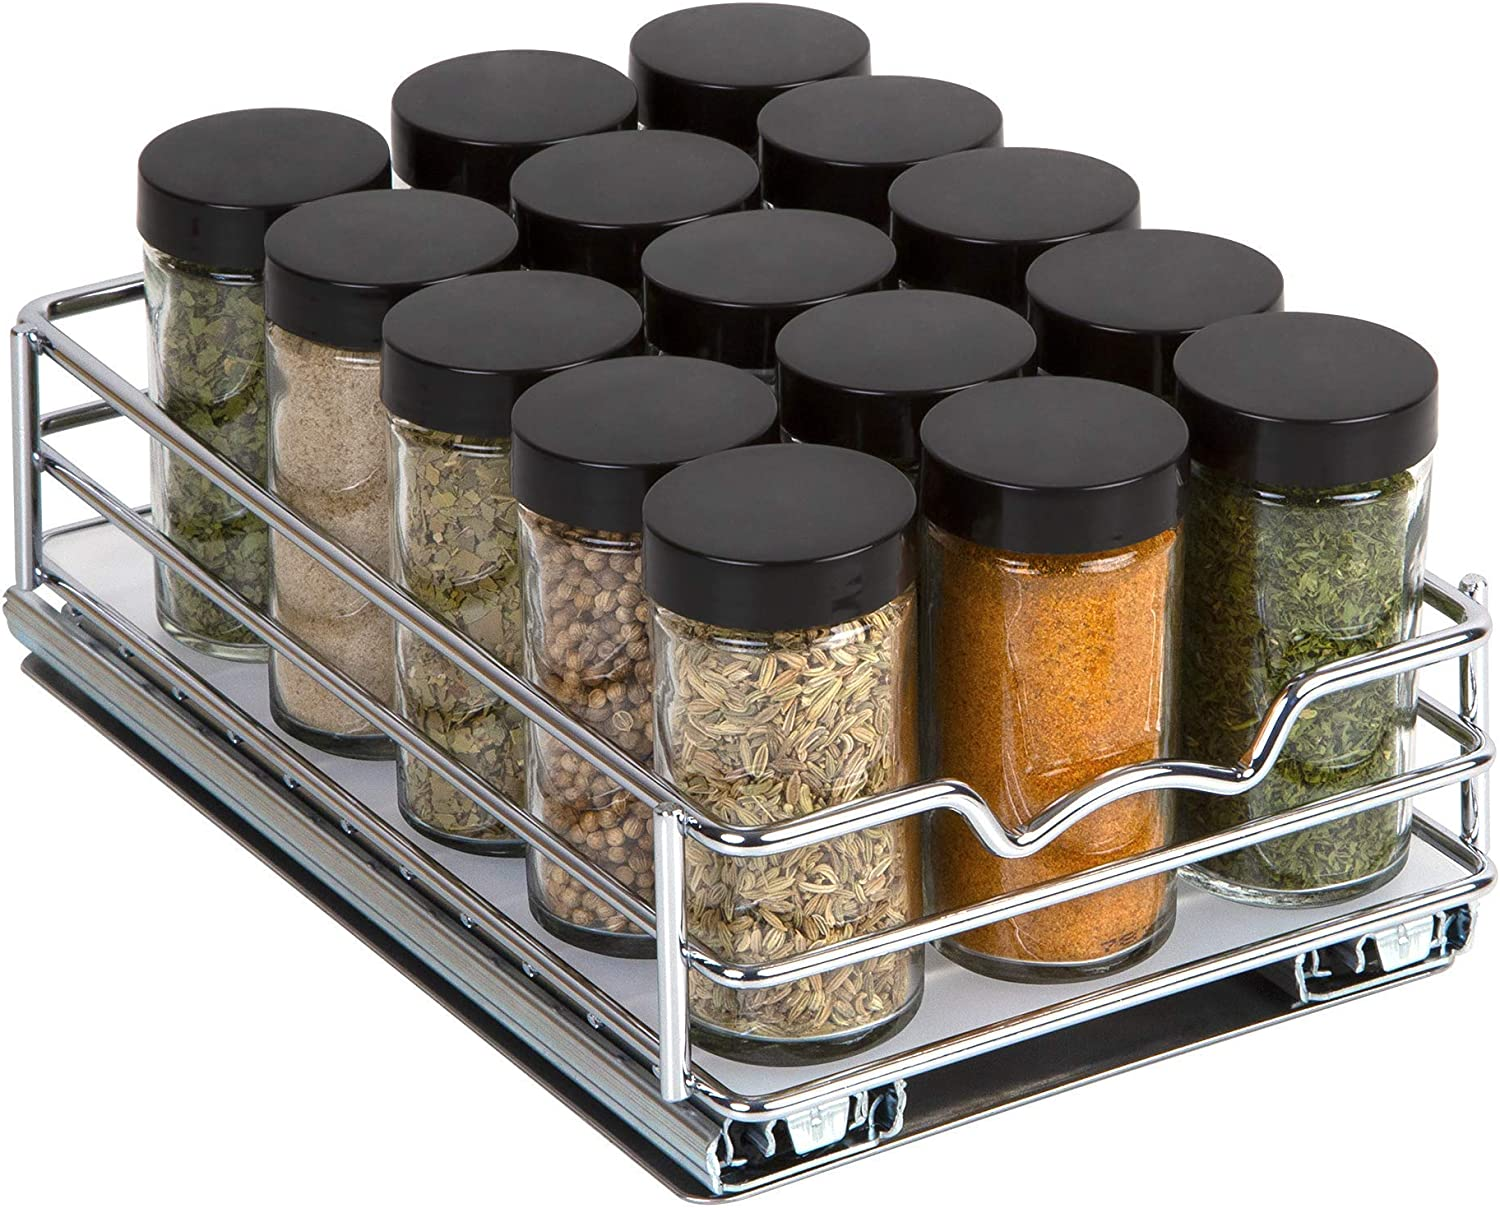 Spice Rack Organizer for Cabinet – Pull Out Spice Rack Heavy Duty Chrome 6-3/8